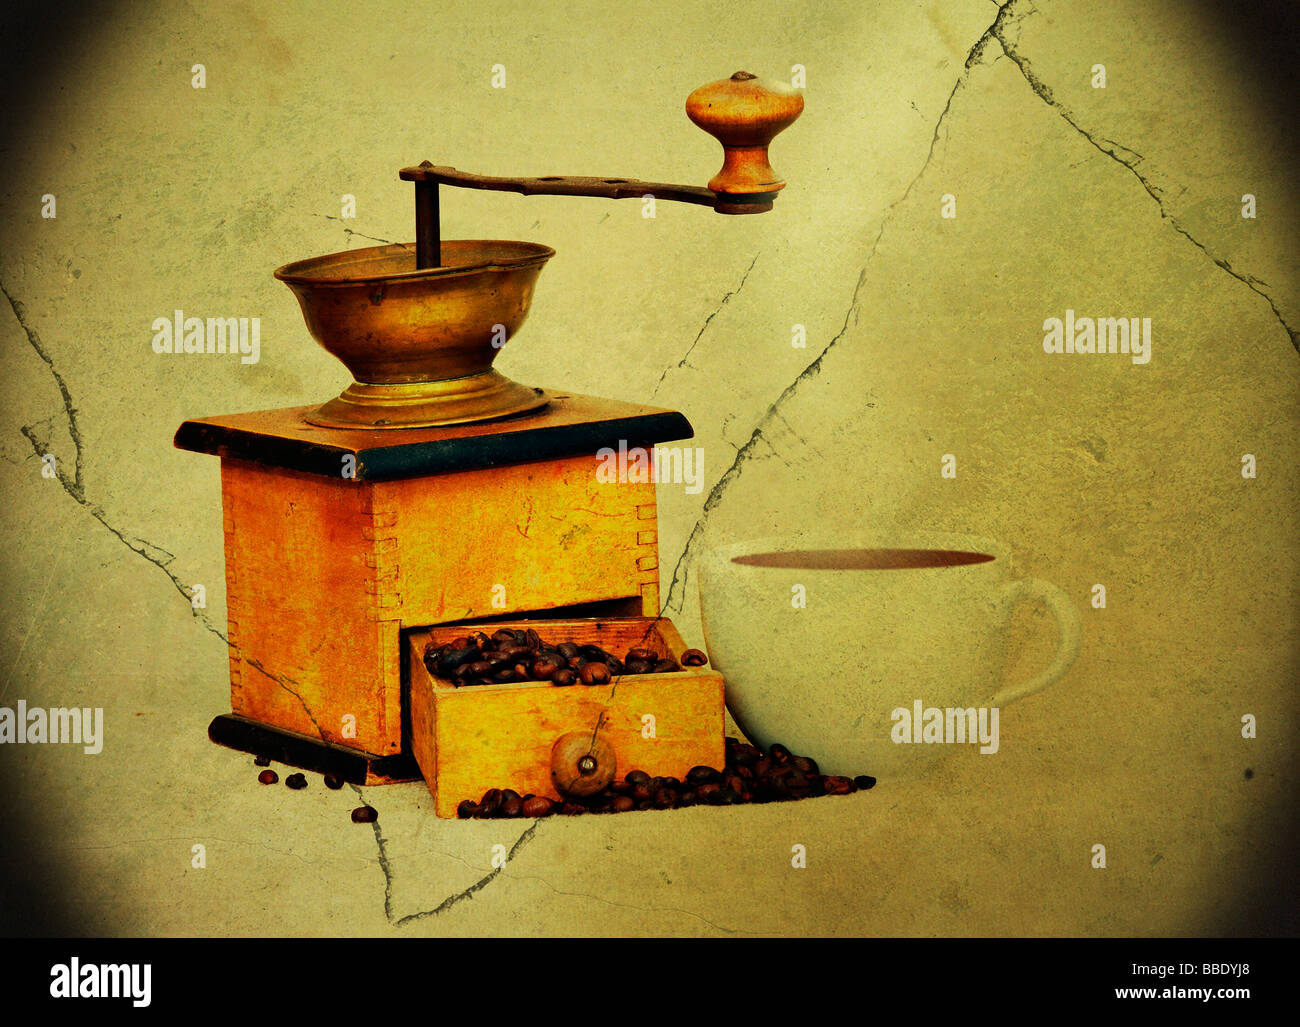 Antique grinder coffee and beans and cup of hot black coffee in grunge style - vignette Stock Photo